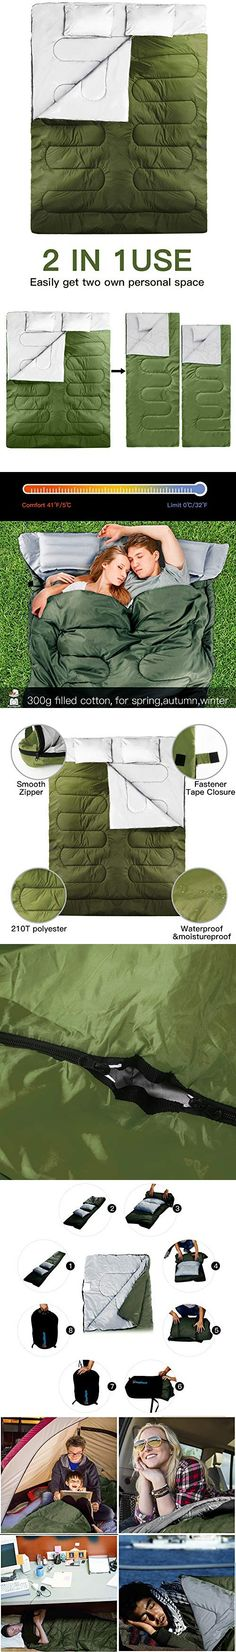 Idealhouse Double Sleeping Bag Queen Size 87 X 59 Waterproof Outdoor Backing